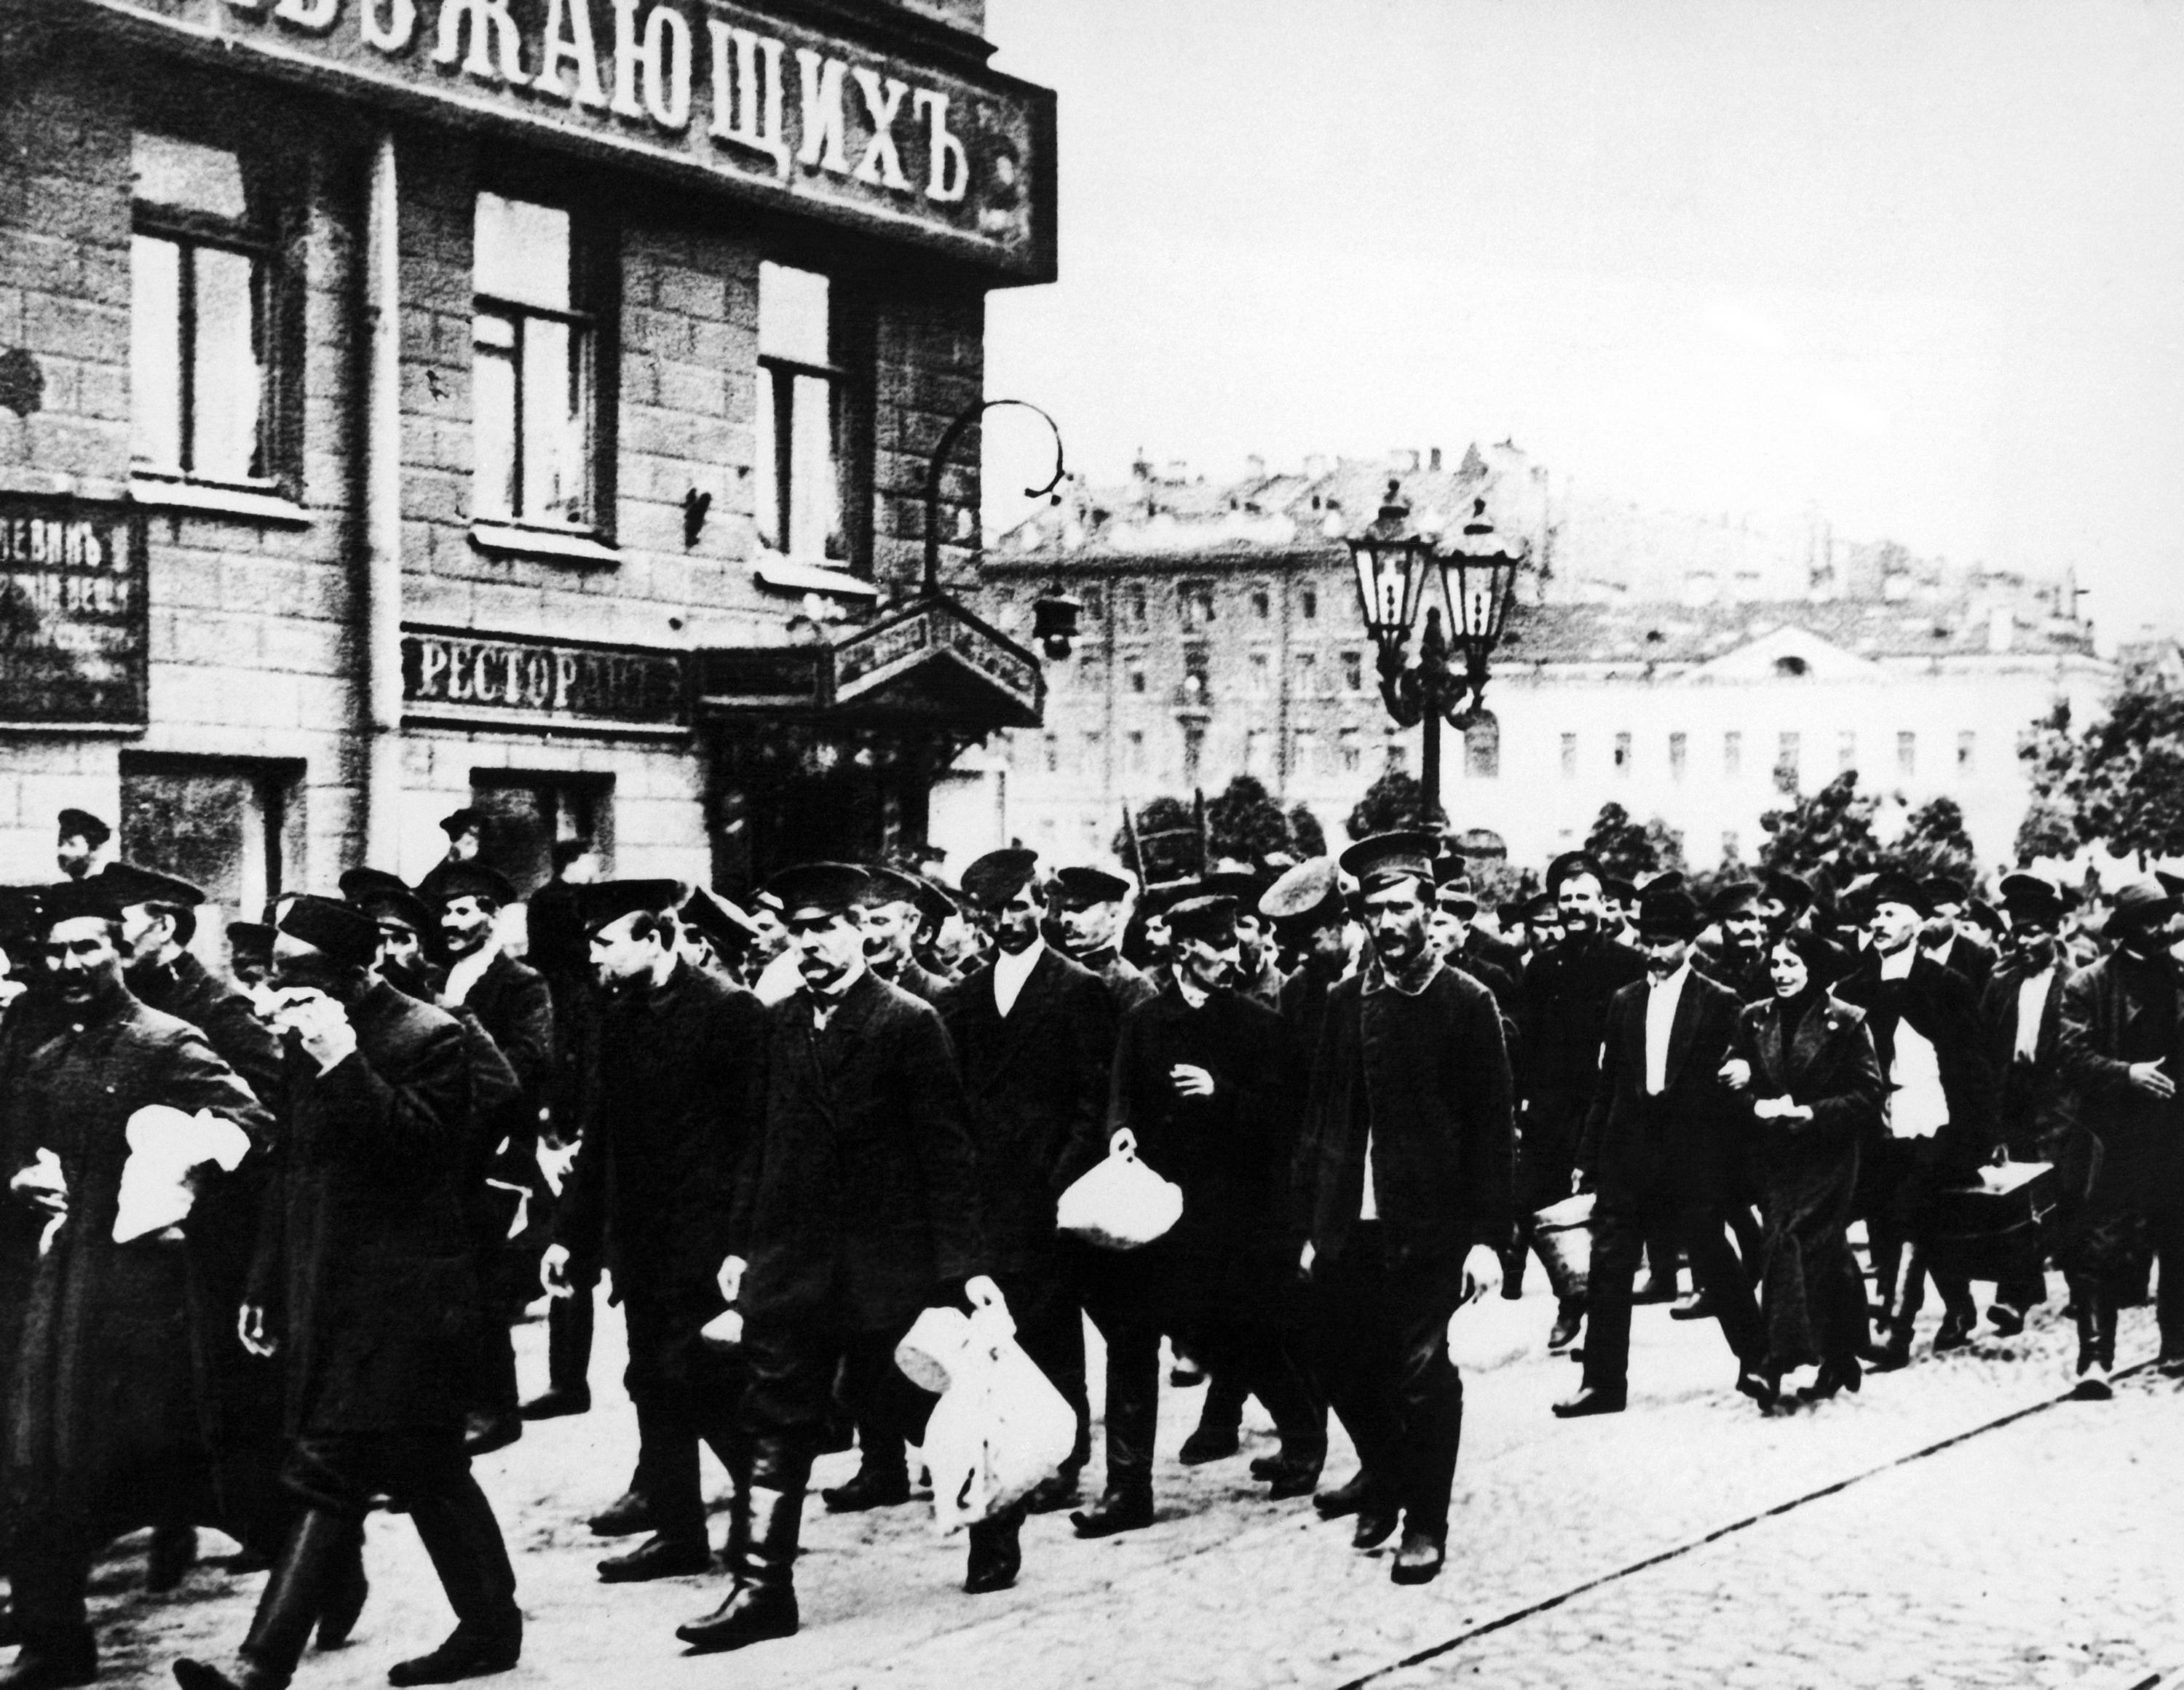 THREE OF 100: In this Aug. 8, 1914 file photo, Russian reservists walk with their belongings in St. Petersburg, Russia. Russia entered World War I with an army which was massive but badly armed.